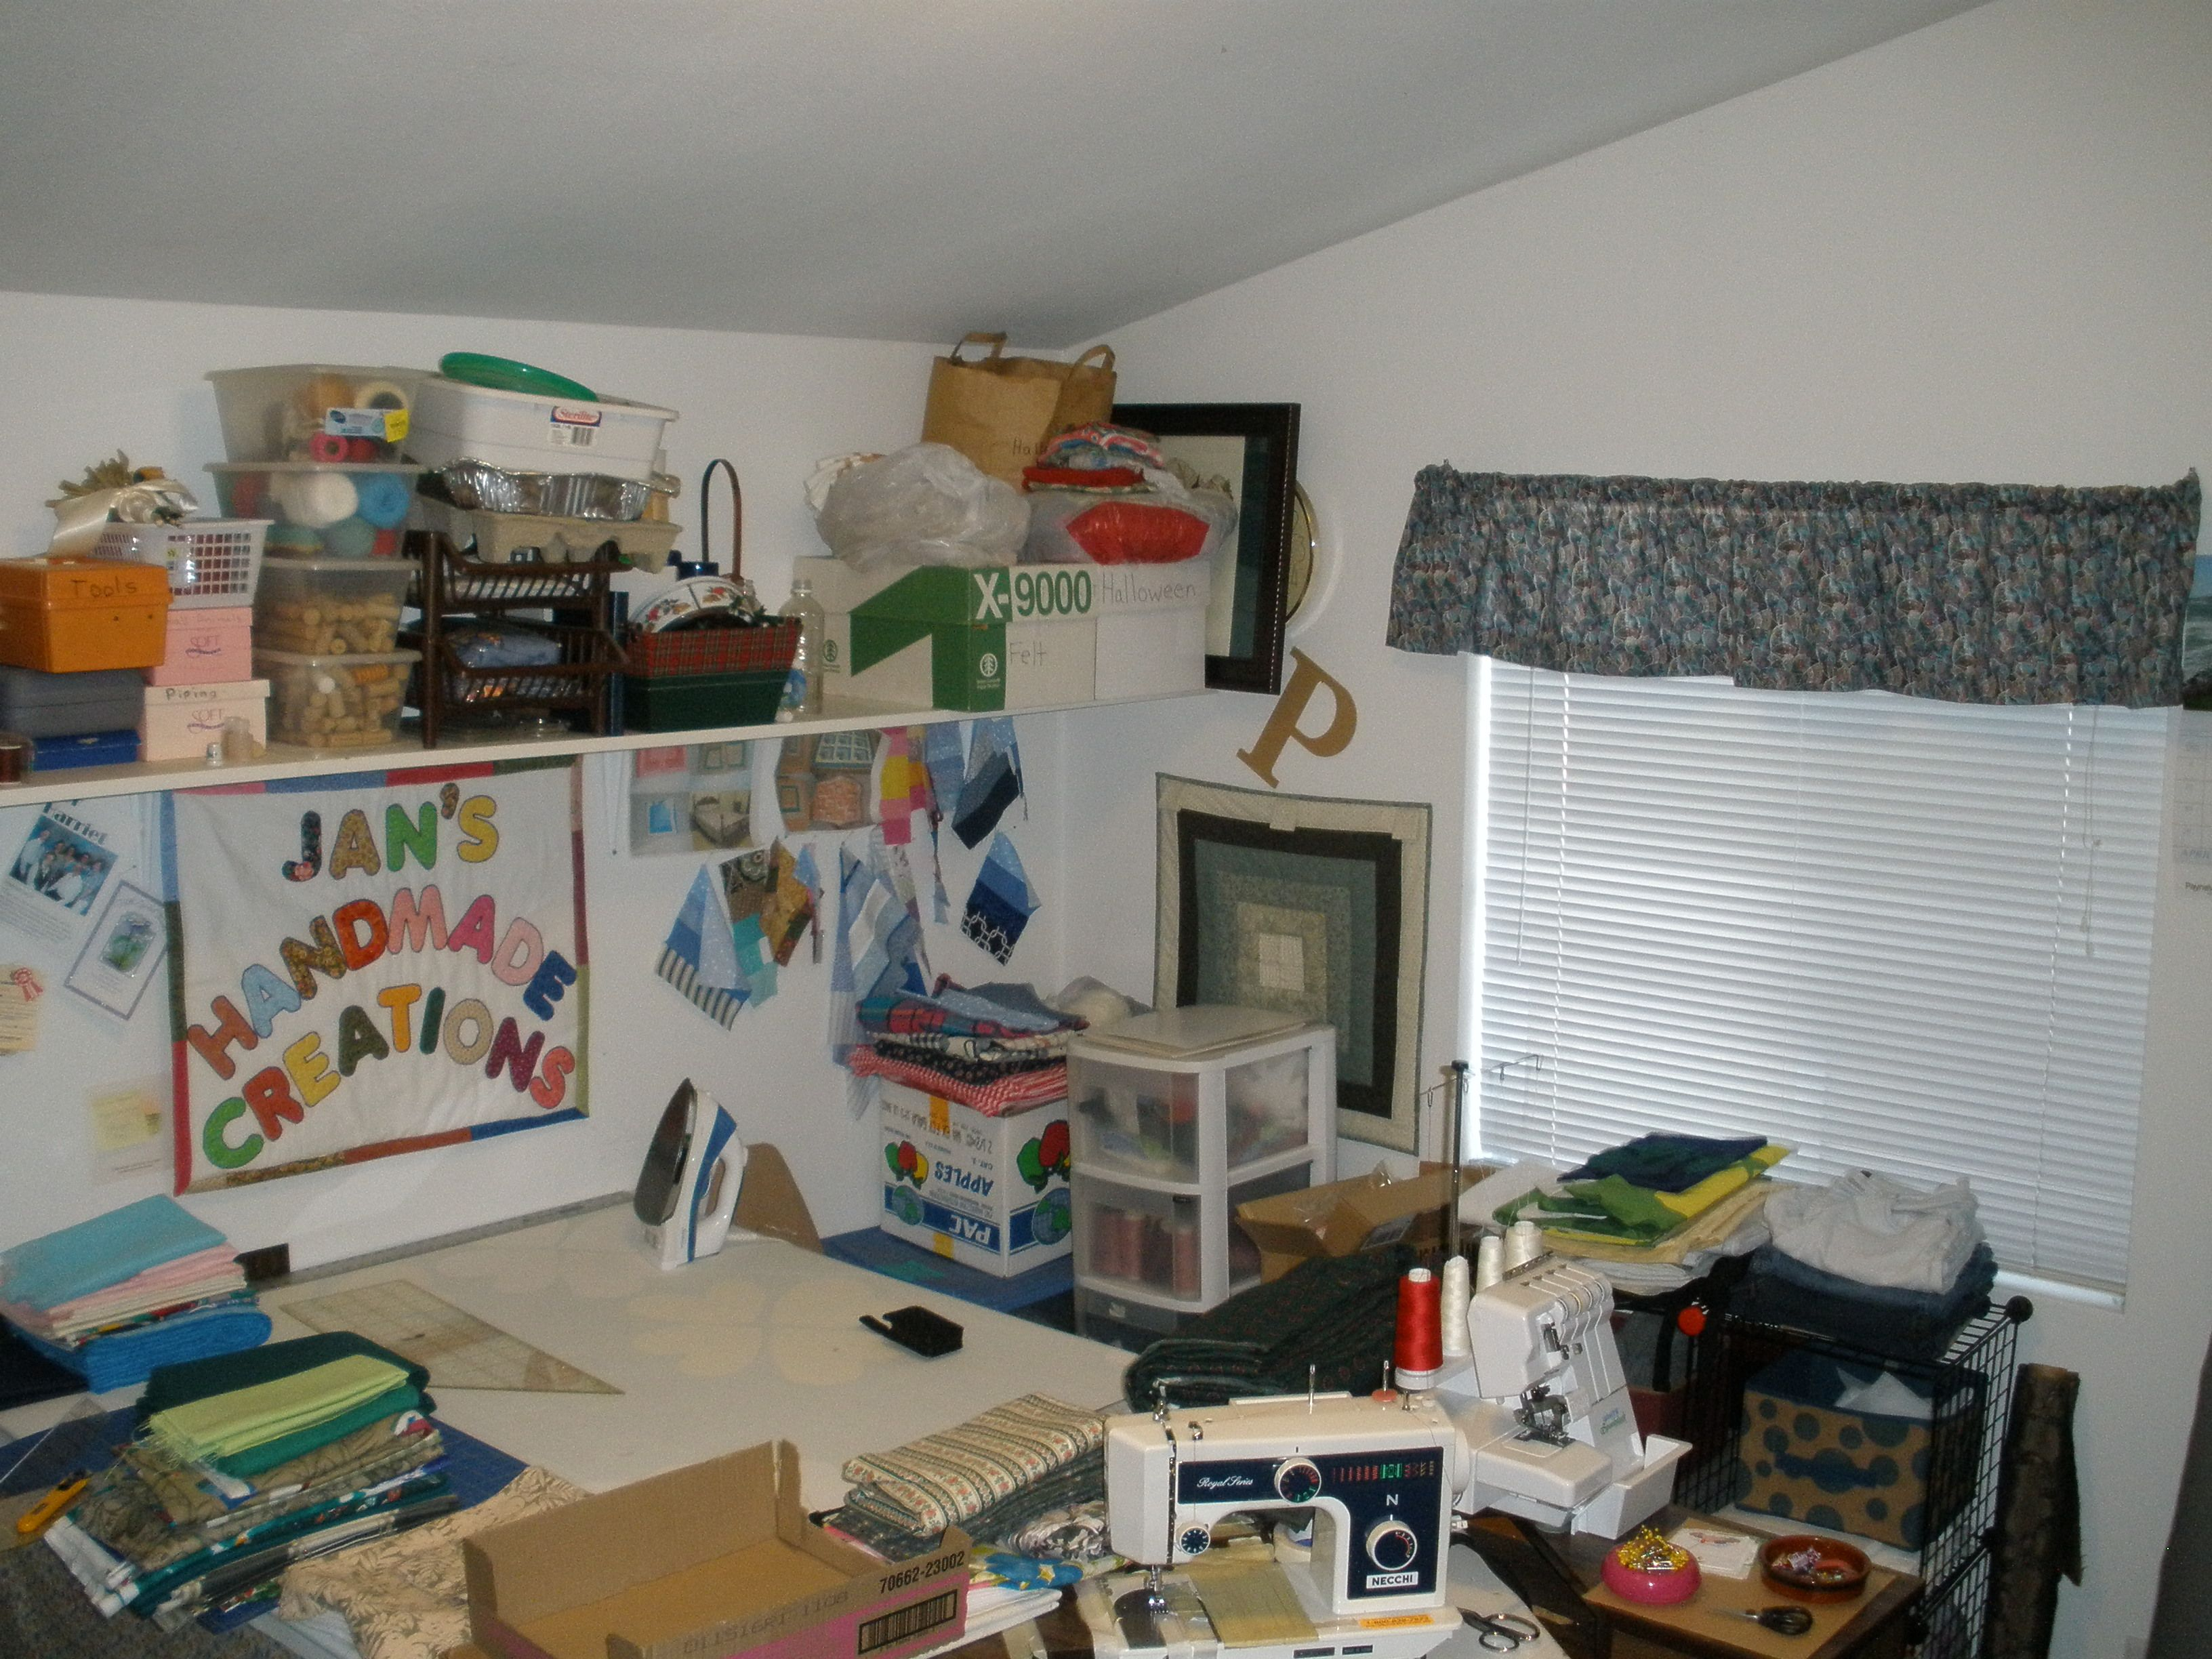 Shelf full with seasonal craft kits, antique quilt tops, drummel, tool box, piping, small plastic animals, thread, boxes of wine cork, cotton yarn, and bags full of more seasonal items. White bag is a cork wreath and a cross stitch picture. Can you see the clock peaking out from behind the frame? Below that is a small hanging quilt. On the table, more fabric, my #1 sewing machines and my serger. My fabric is on an open shelf to the right of the window, so I keep the shade closed.